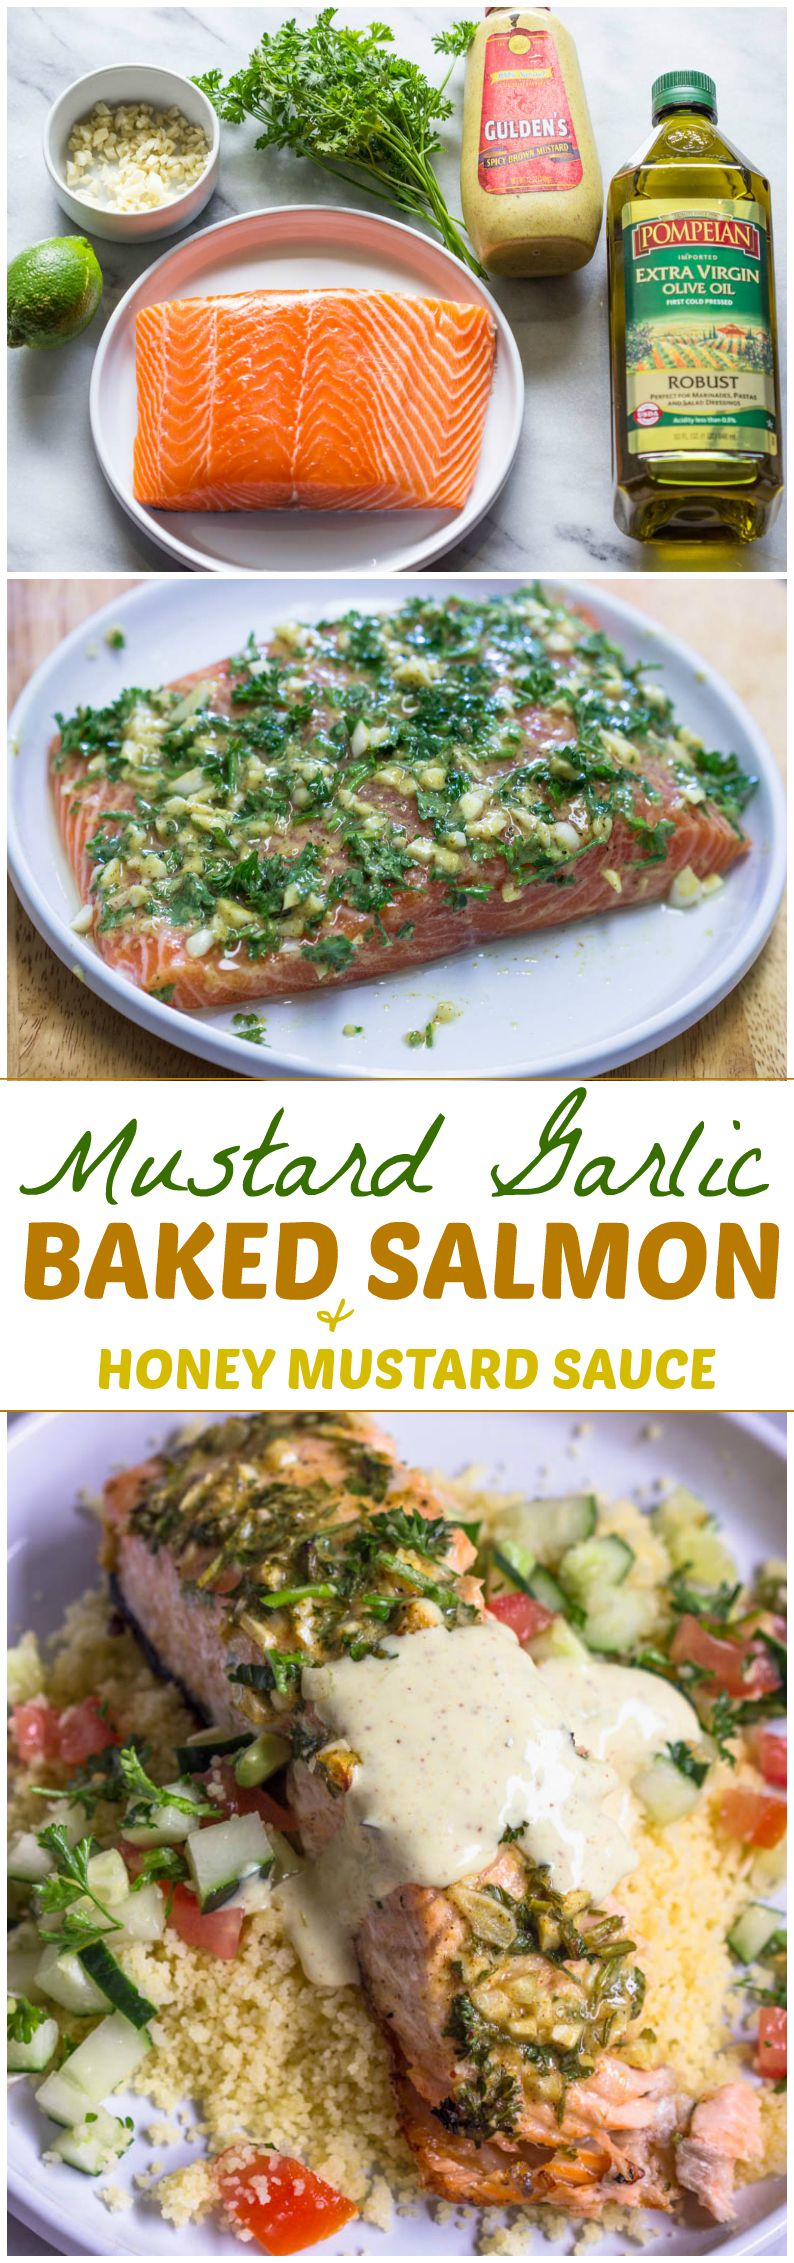 Mustard Garlic Baked Salmon with Honey Mustard Sauce (Easy, Delicious ...